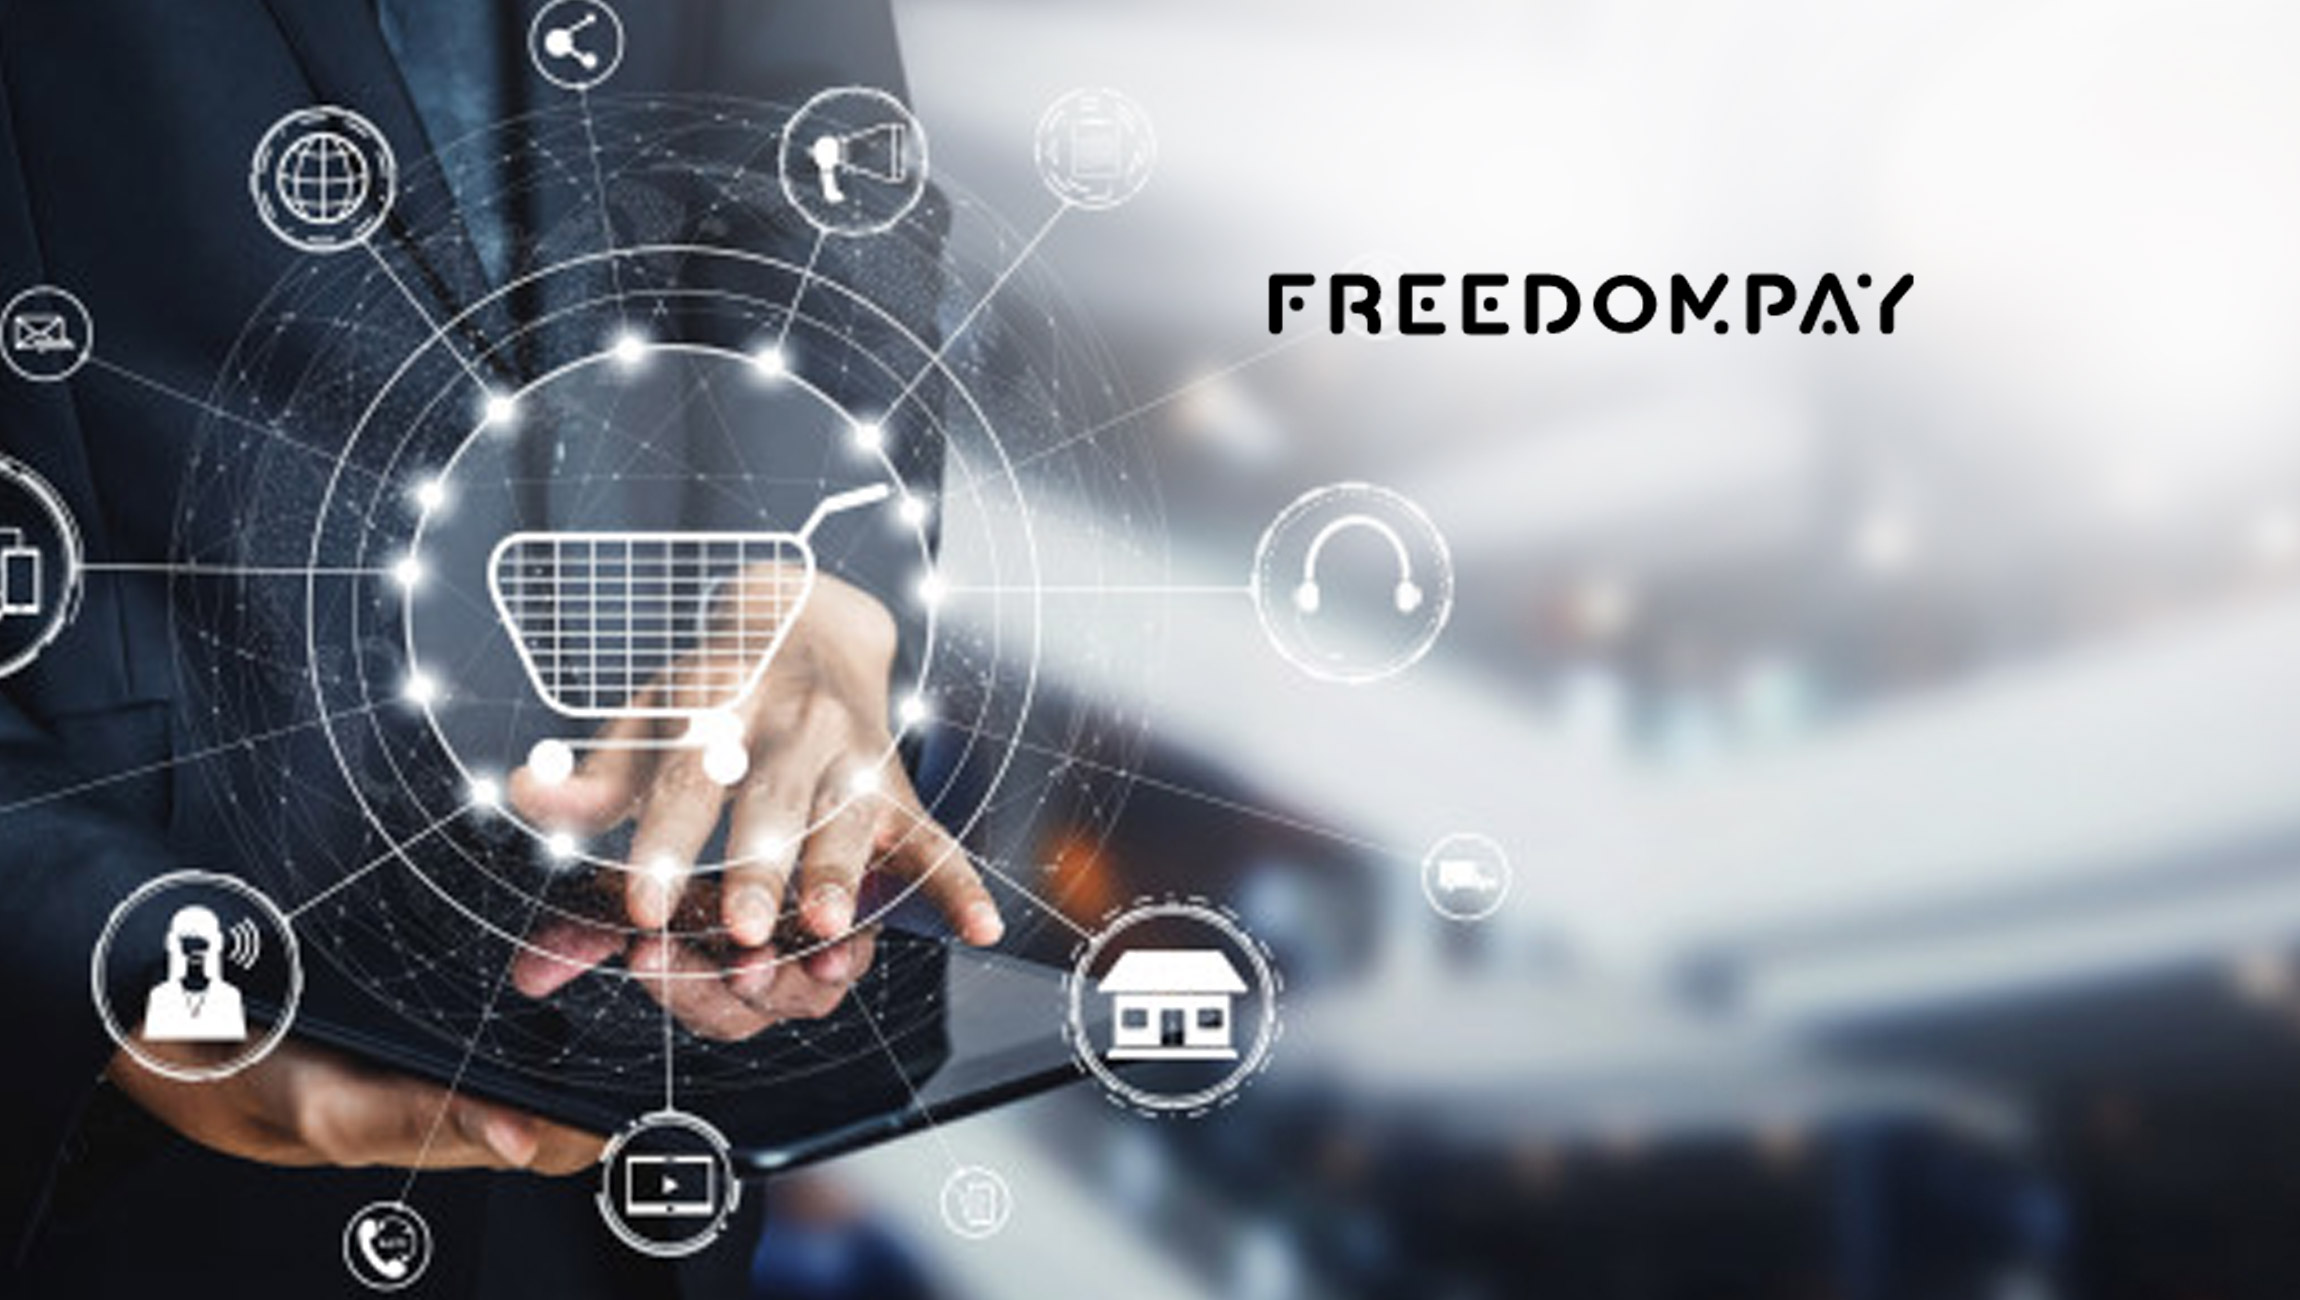 75% of C-Level Executives in the U.S. Retail, Hotel and Restaurant Sectors* Admit to a Seismic Shift Towards Digital Commerce According to a Study Revealed by J.P. Morgan and FreedomPay